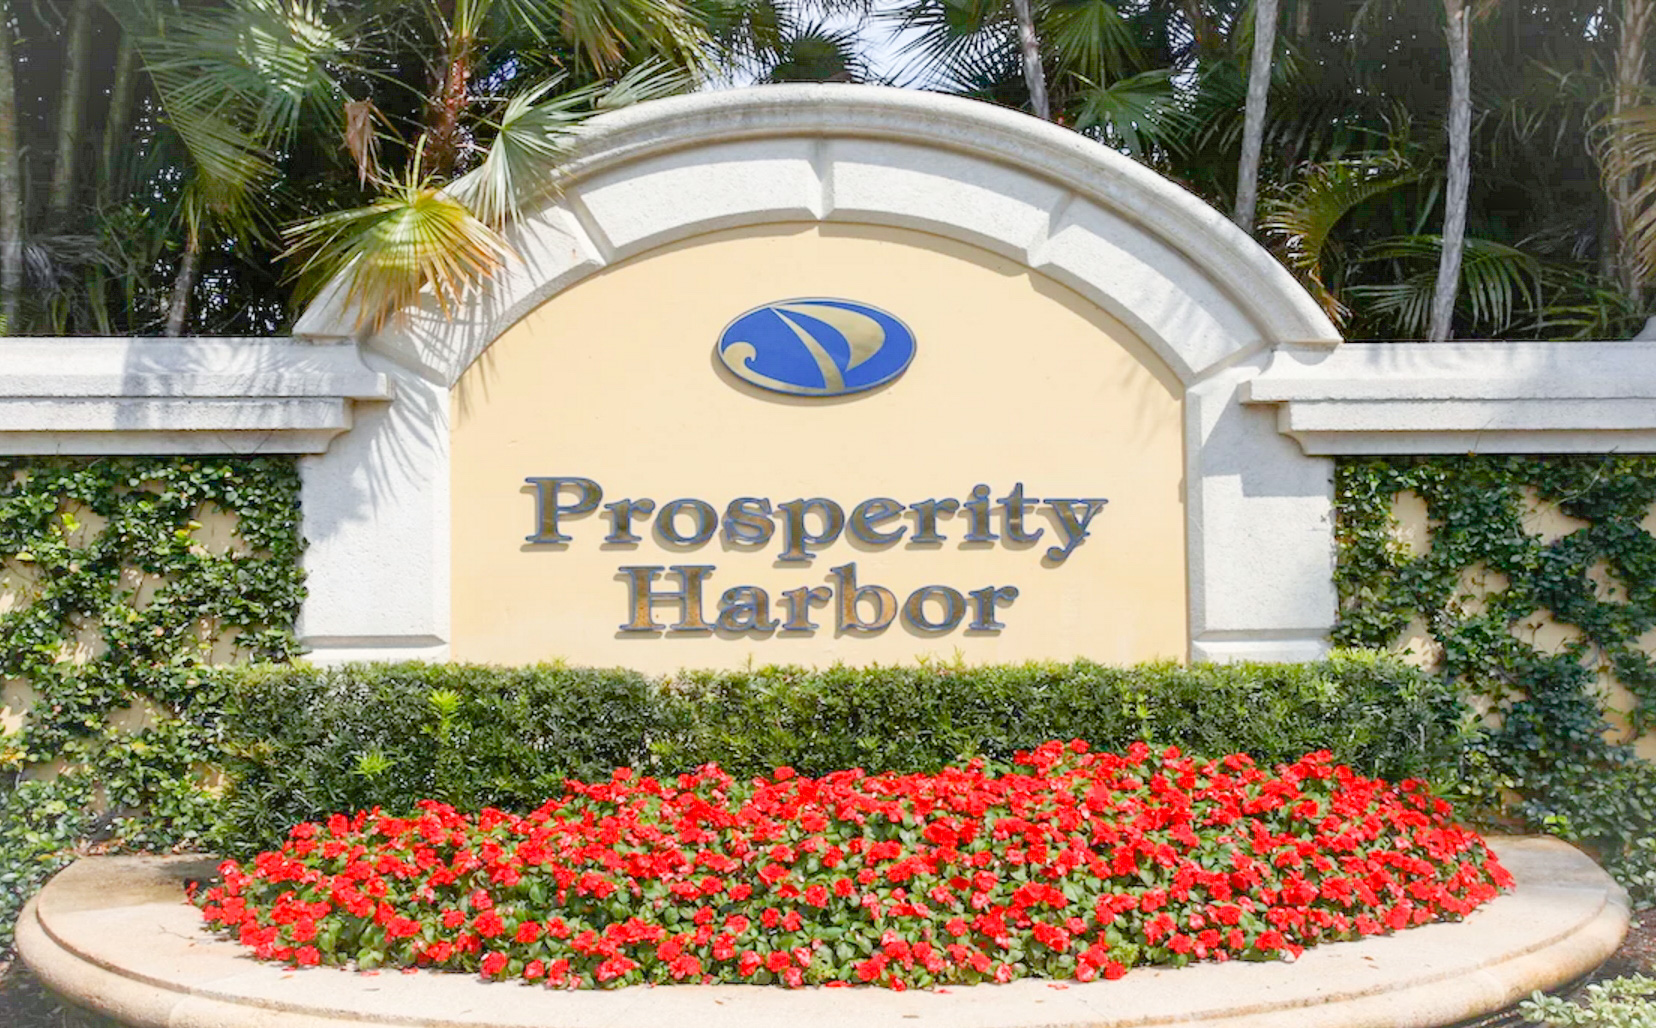 Prosperity Harbor Homes for Sale in North Palm Beach, FL 33410 community image